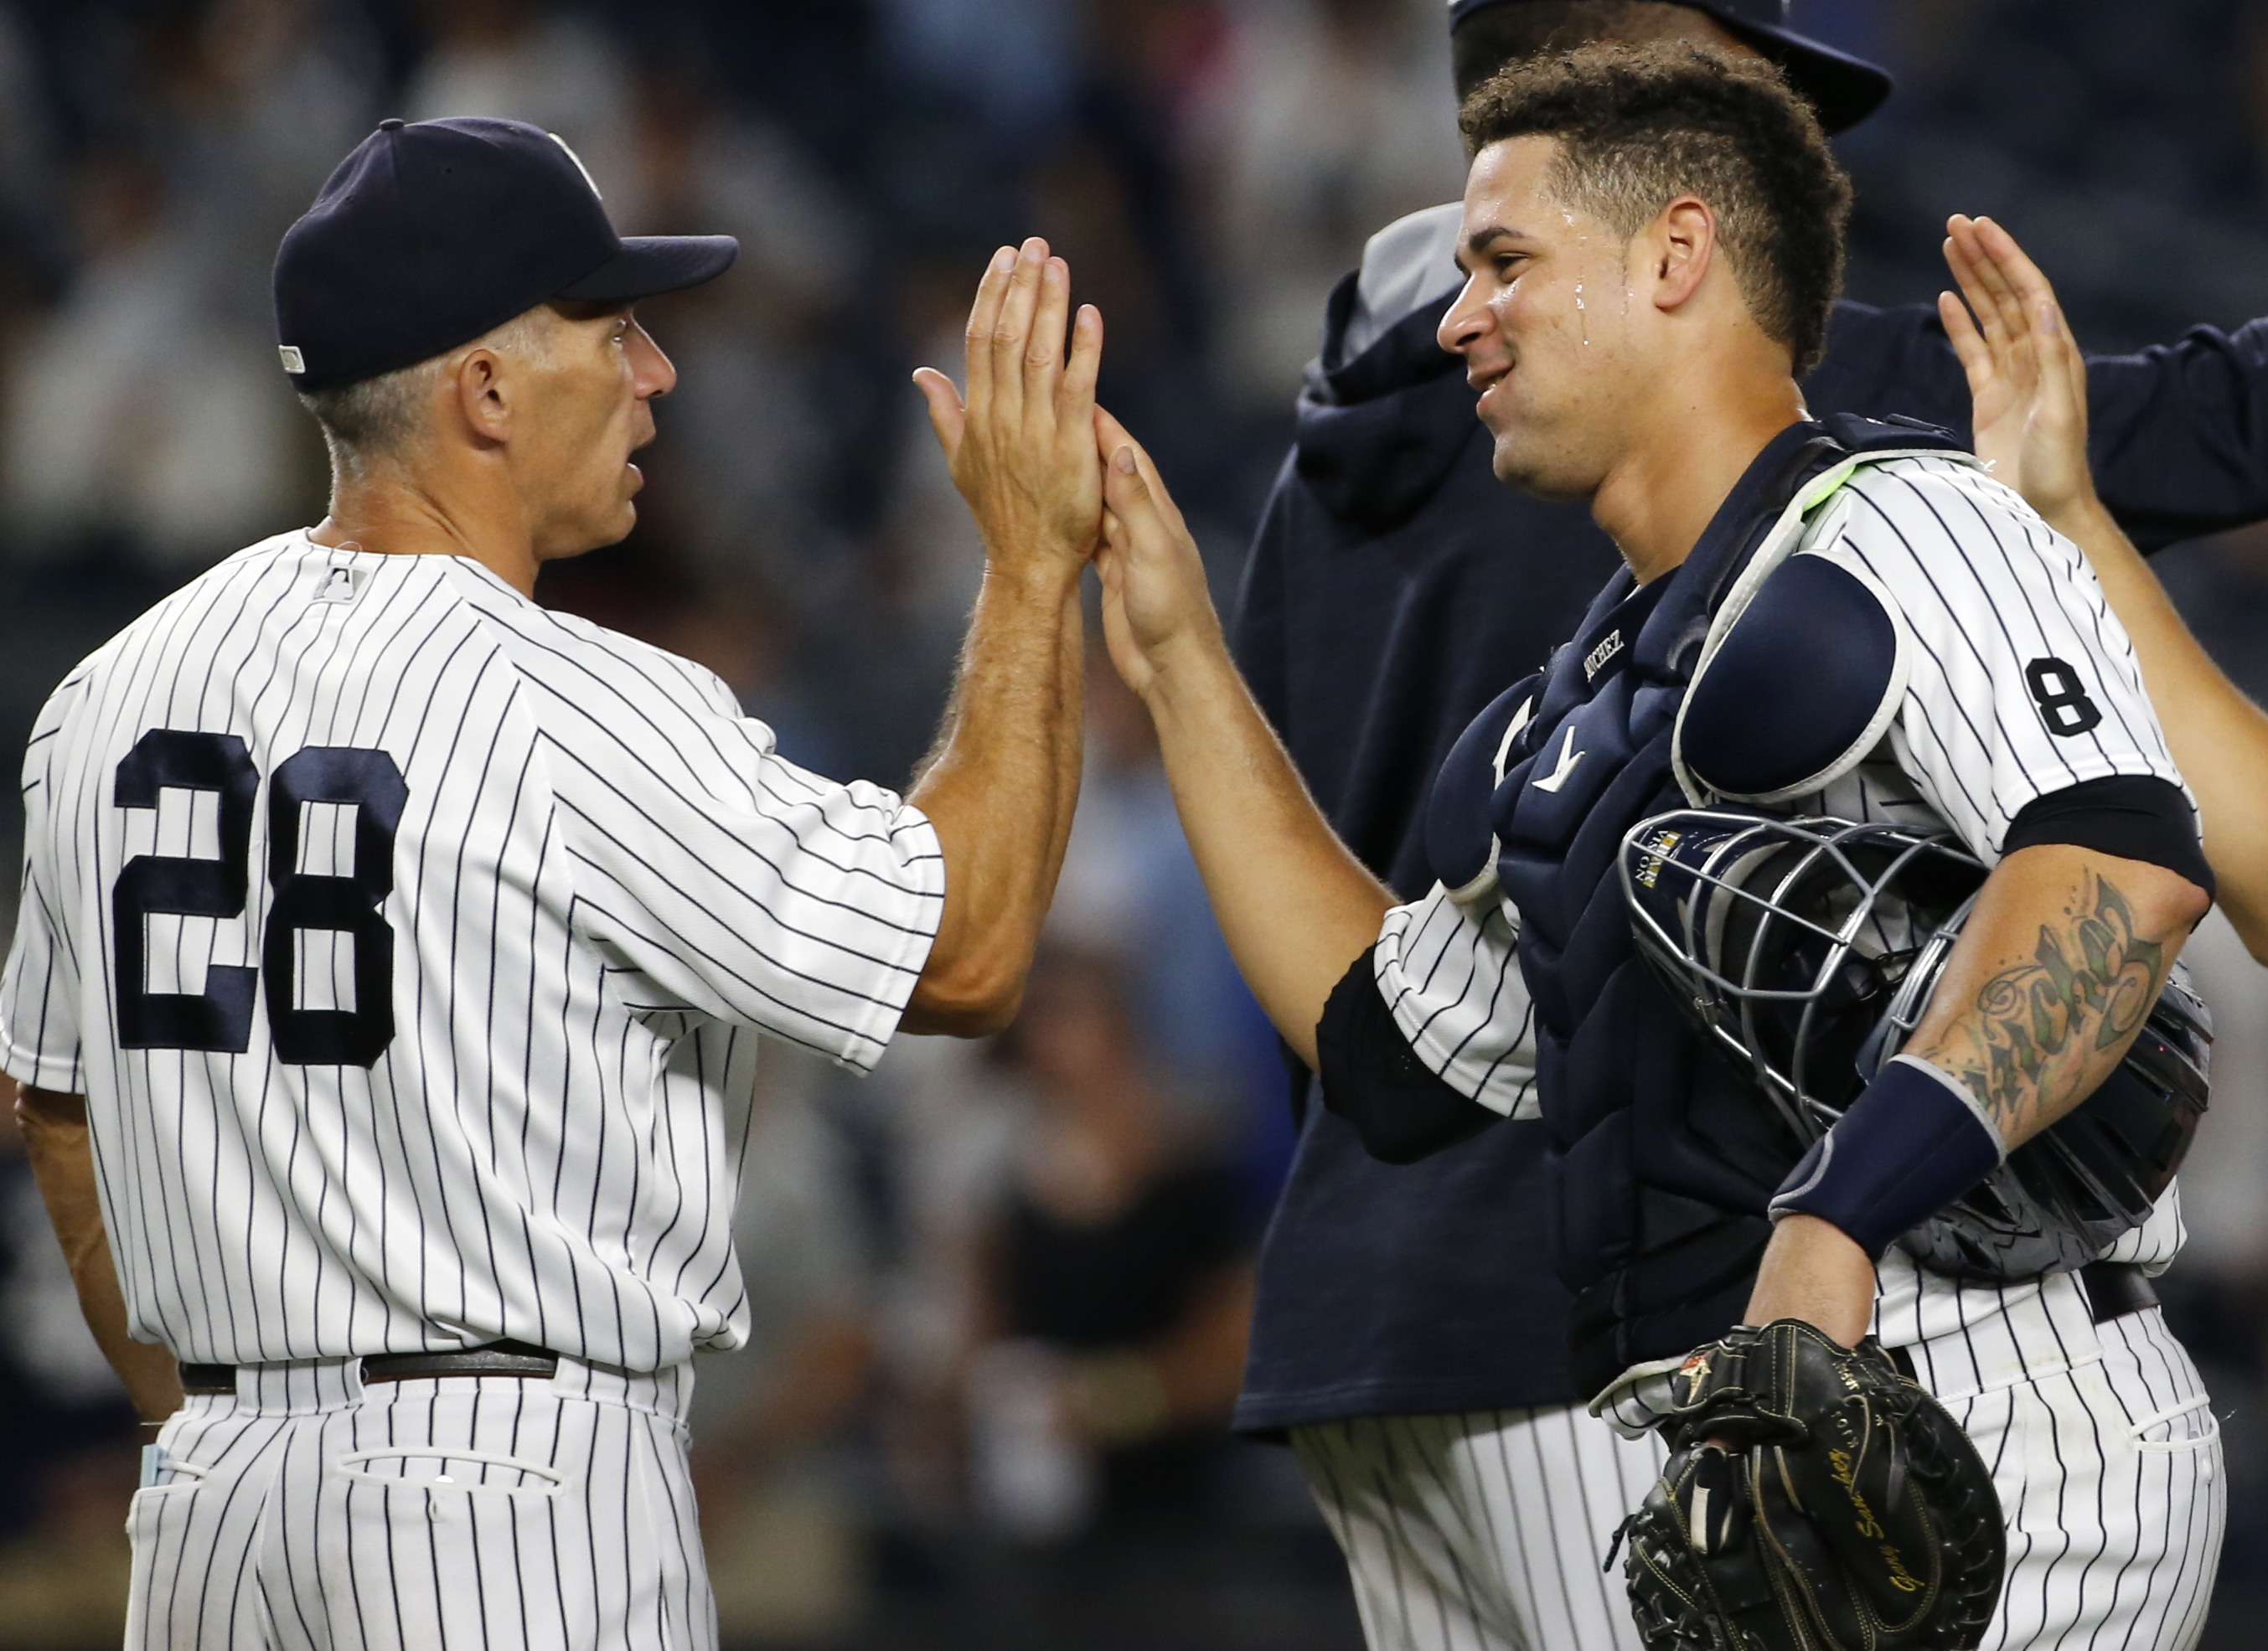 New York Yankees manager Joe Girardi (28) congratulates catcher Gary Sanchez after the Yankees' 14-4 victory over the Baltimore Orioles in a baseball game in New York, Friday, Aug. 26, 2016. Sanchez had three hits, including a two-run home run, and four R